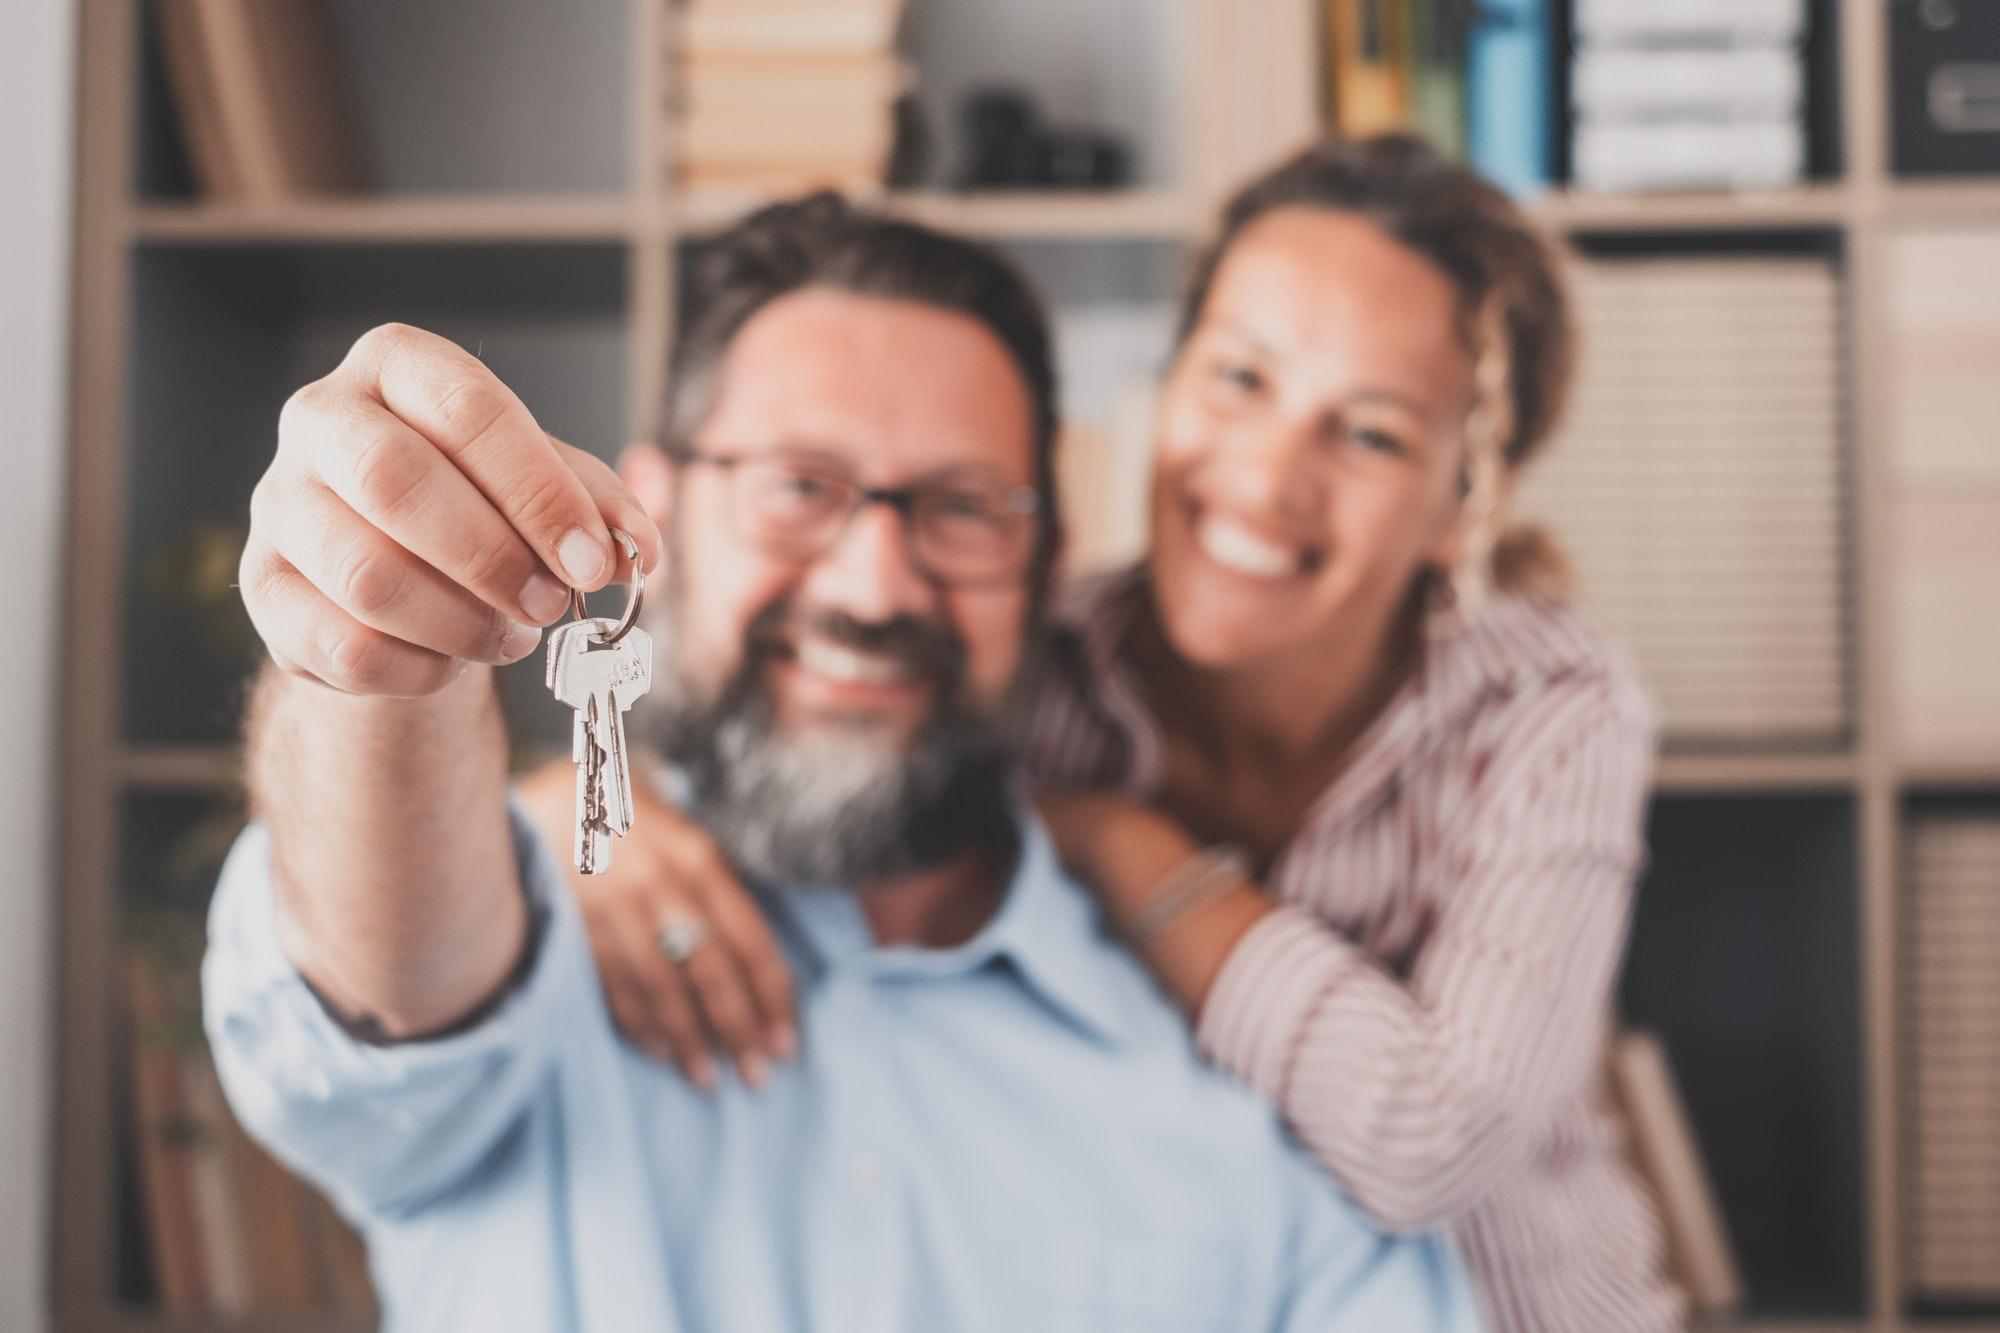 Focus on keys, held by excited young spouses homeowners. Happy married family couple